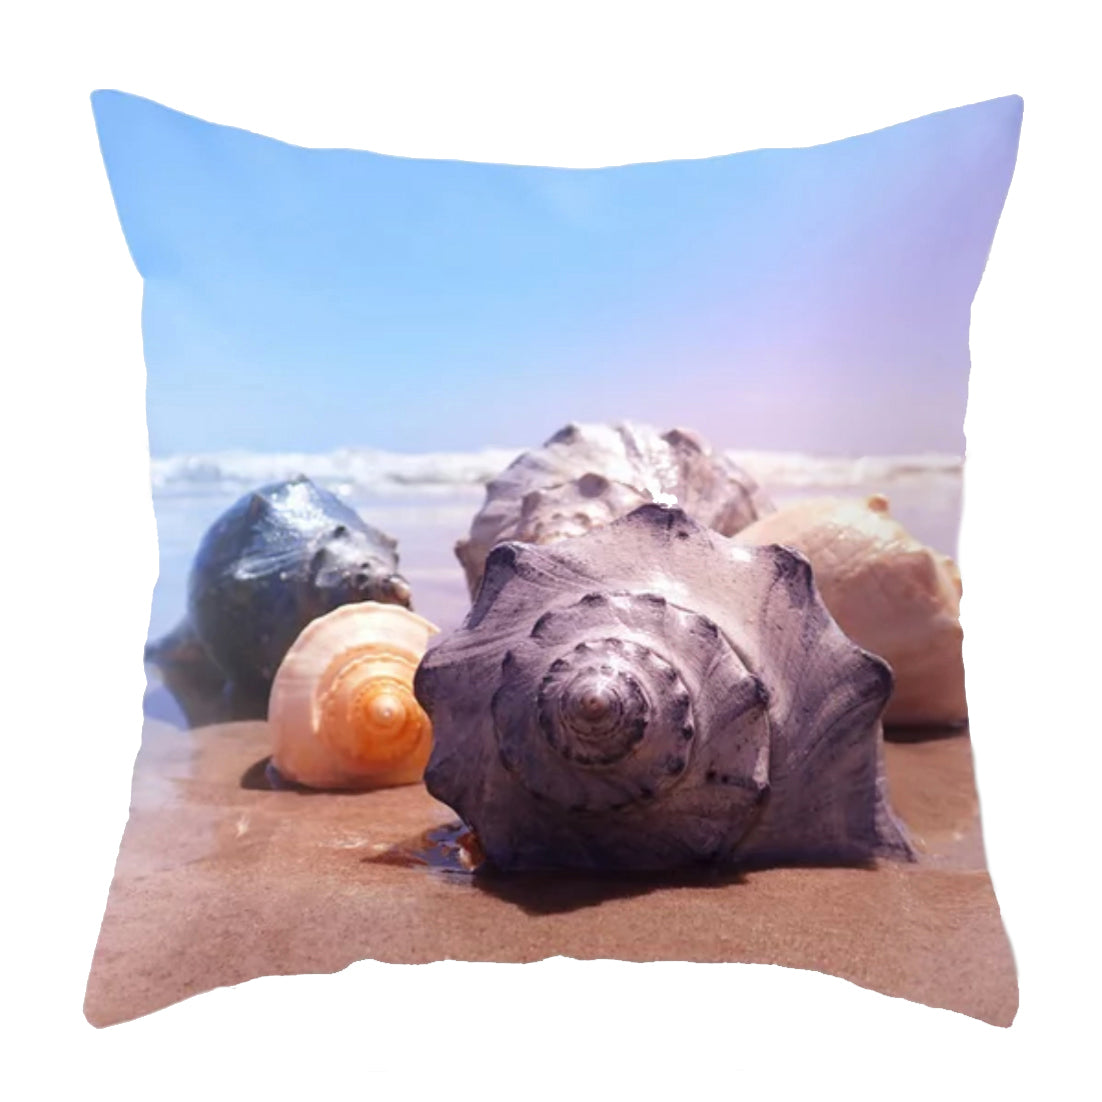 Conch Shells Throw Pillow